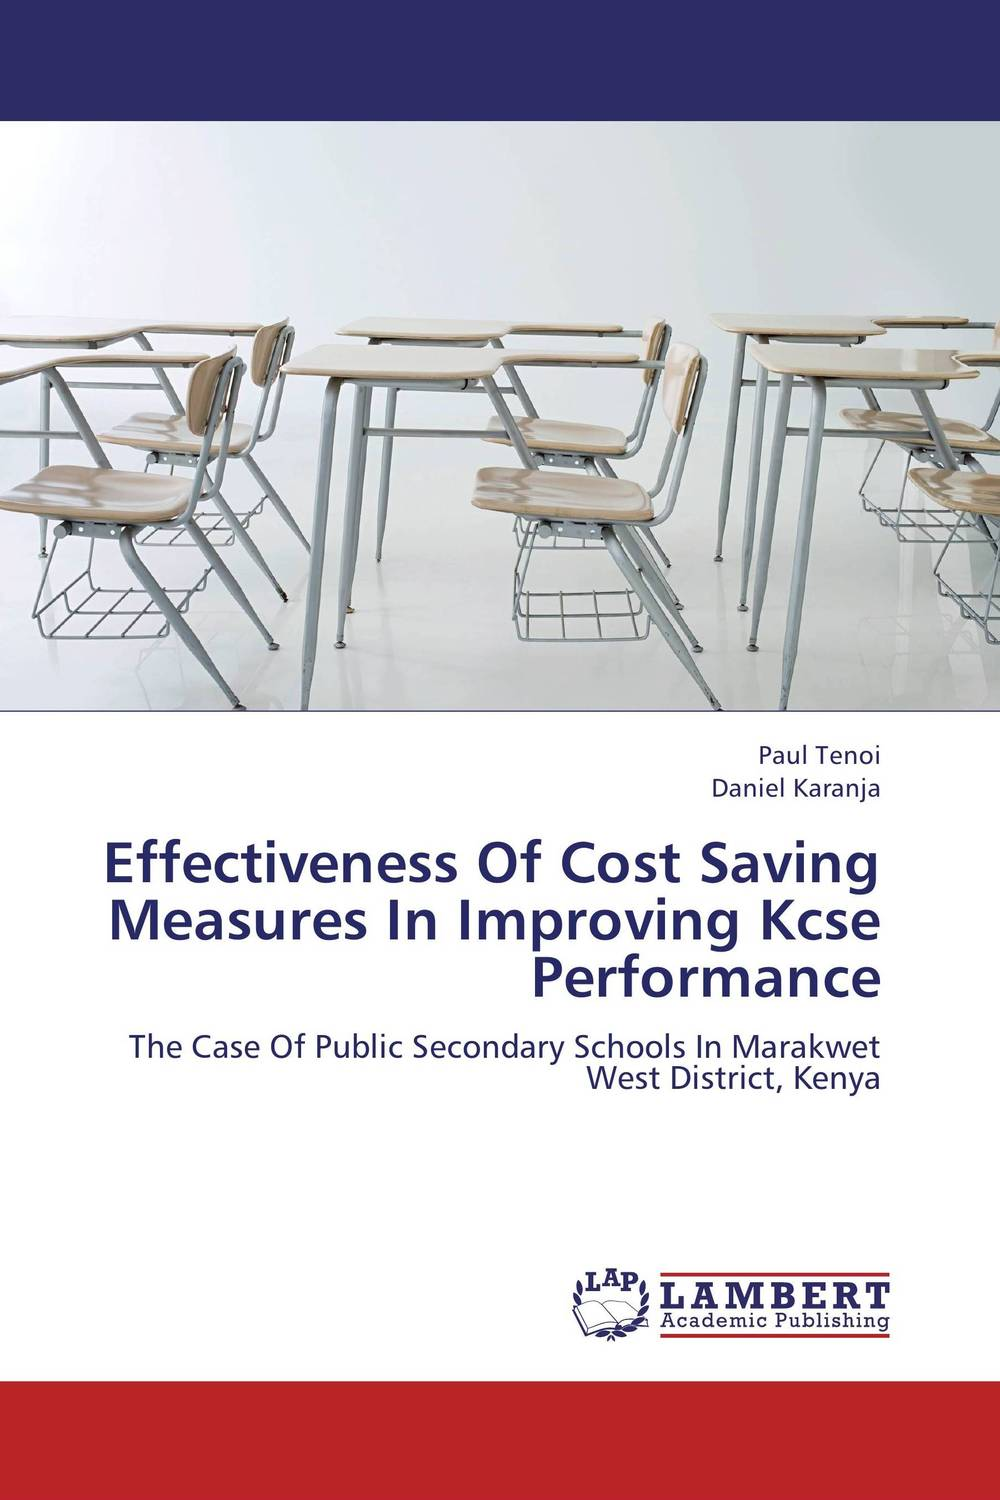 Effectiveness Of Cost Saving Measures In Improving Kcse Performance female head teachers administrative challenges in schools in kenya